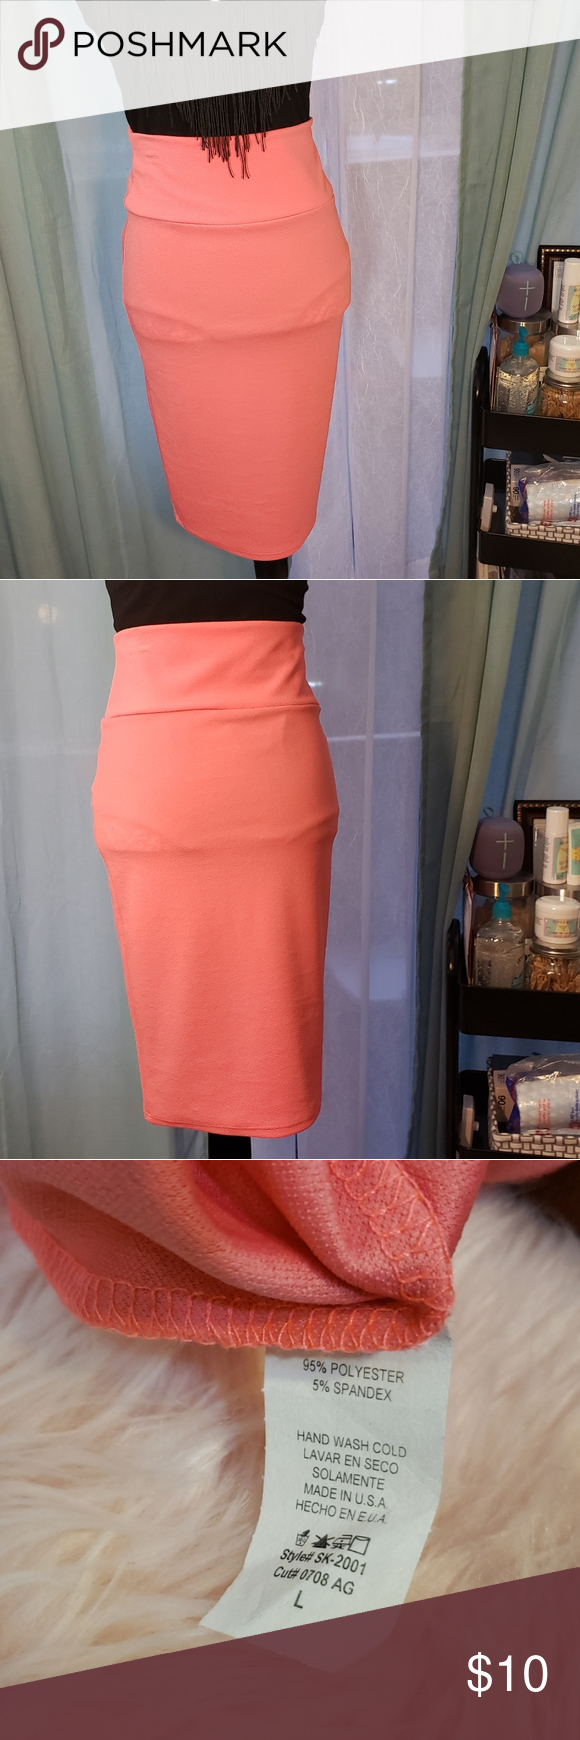 Never Worn High Waist Stretch Pencil Skirt This salmon colored pencil skirt is a…